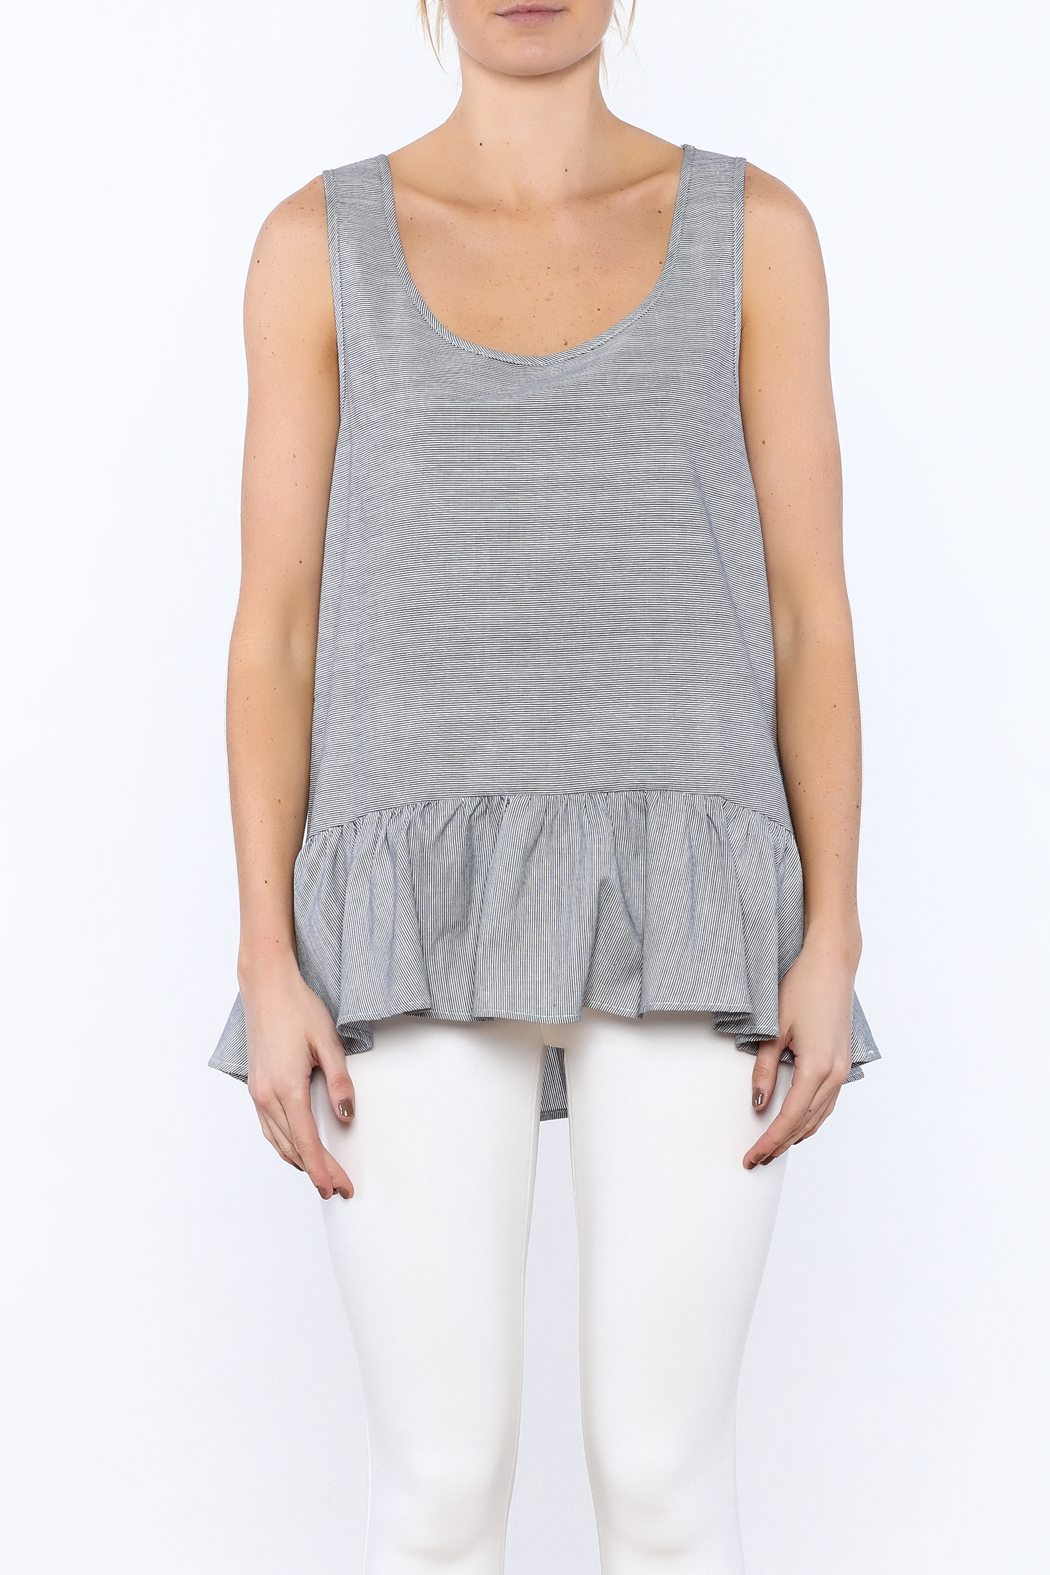 Zoa Grey Sleeveless Top - Side Cropped Image